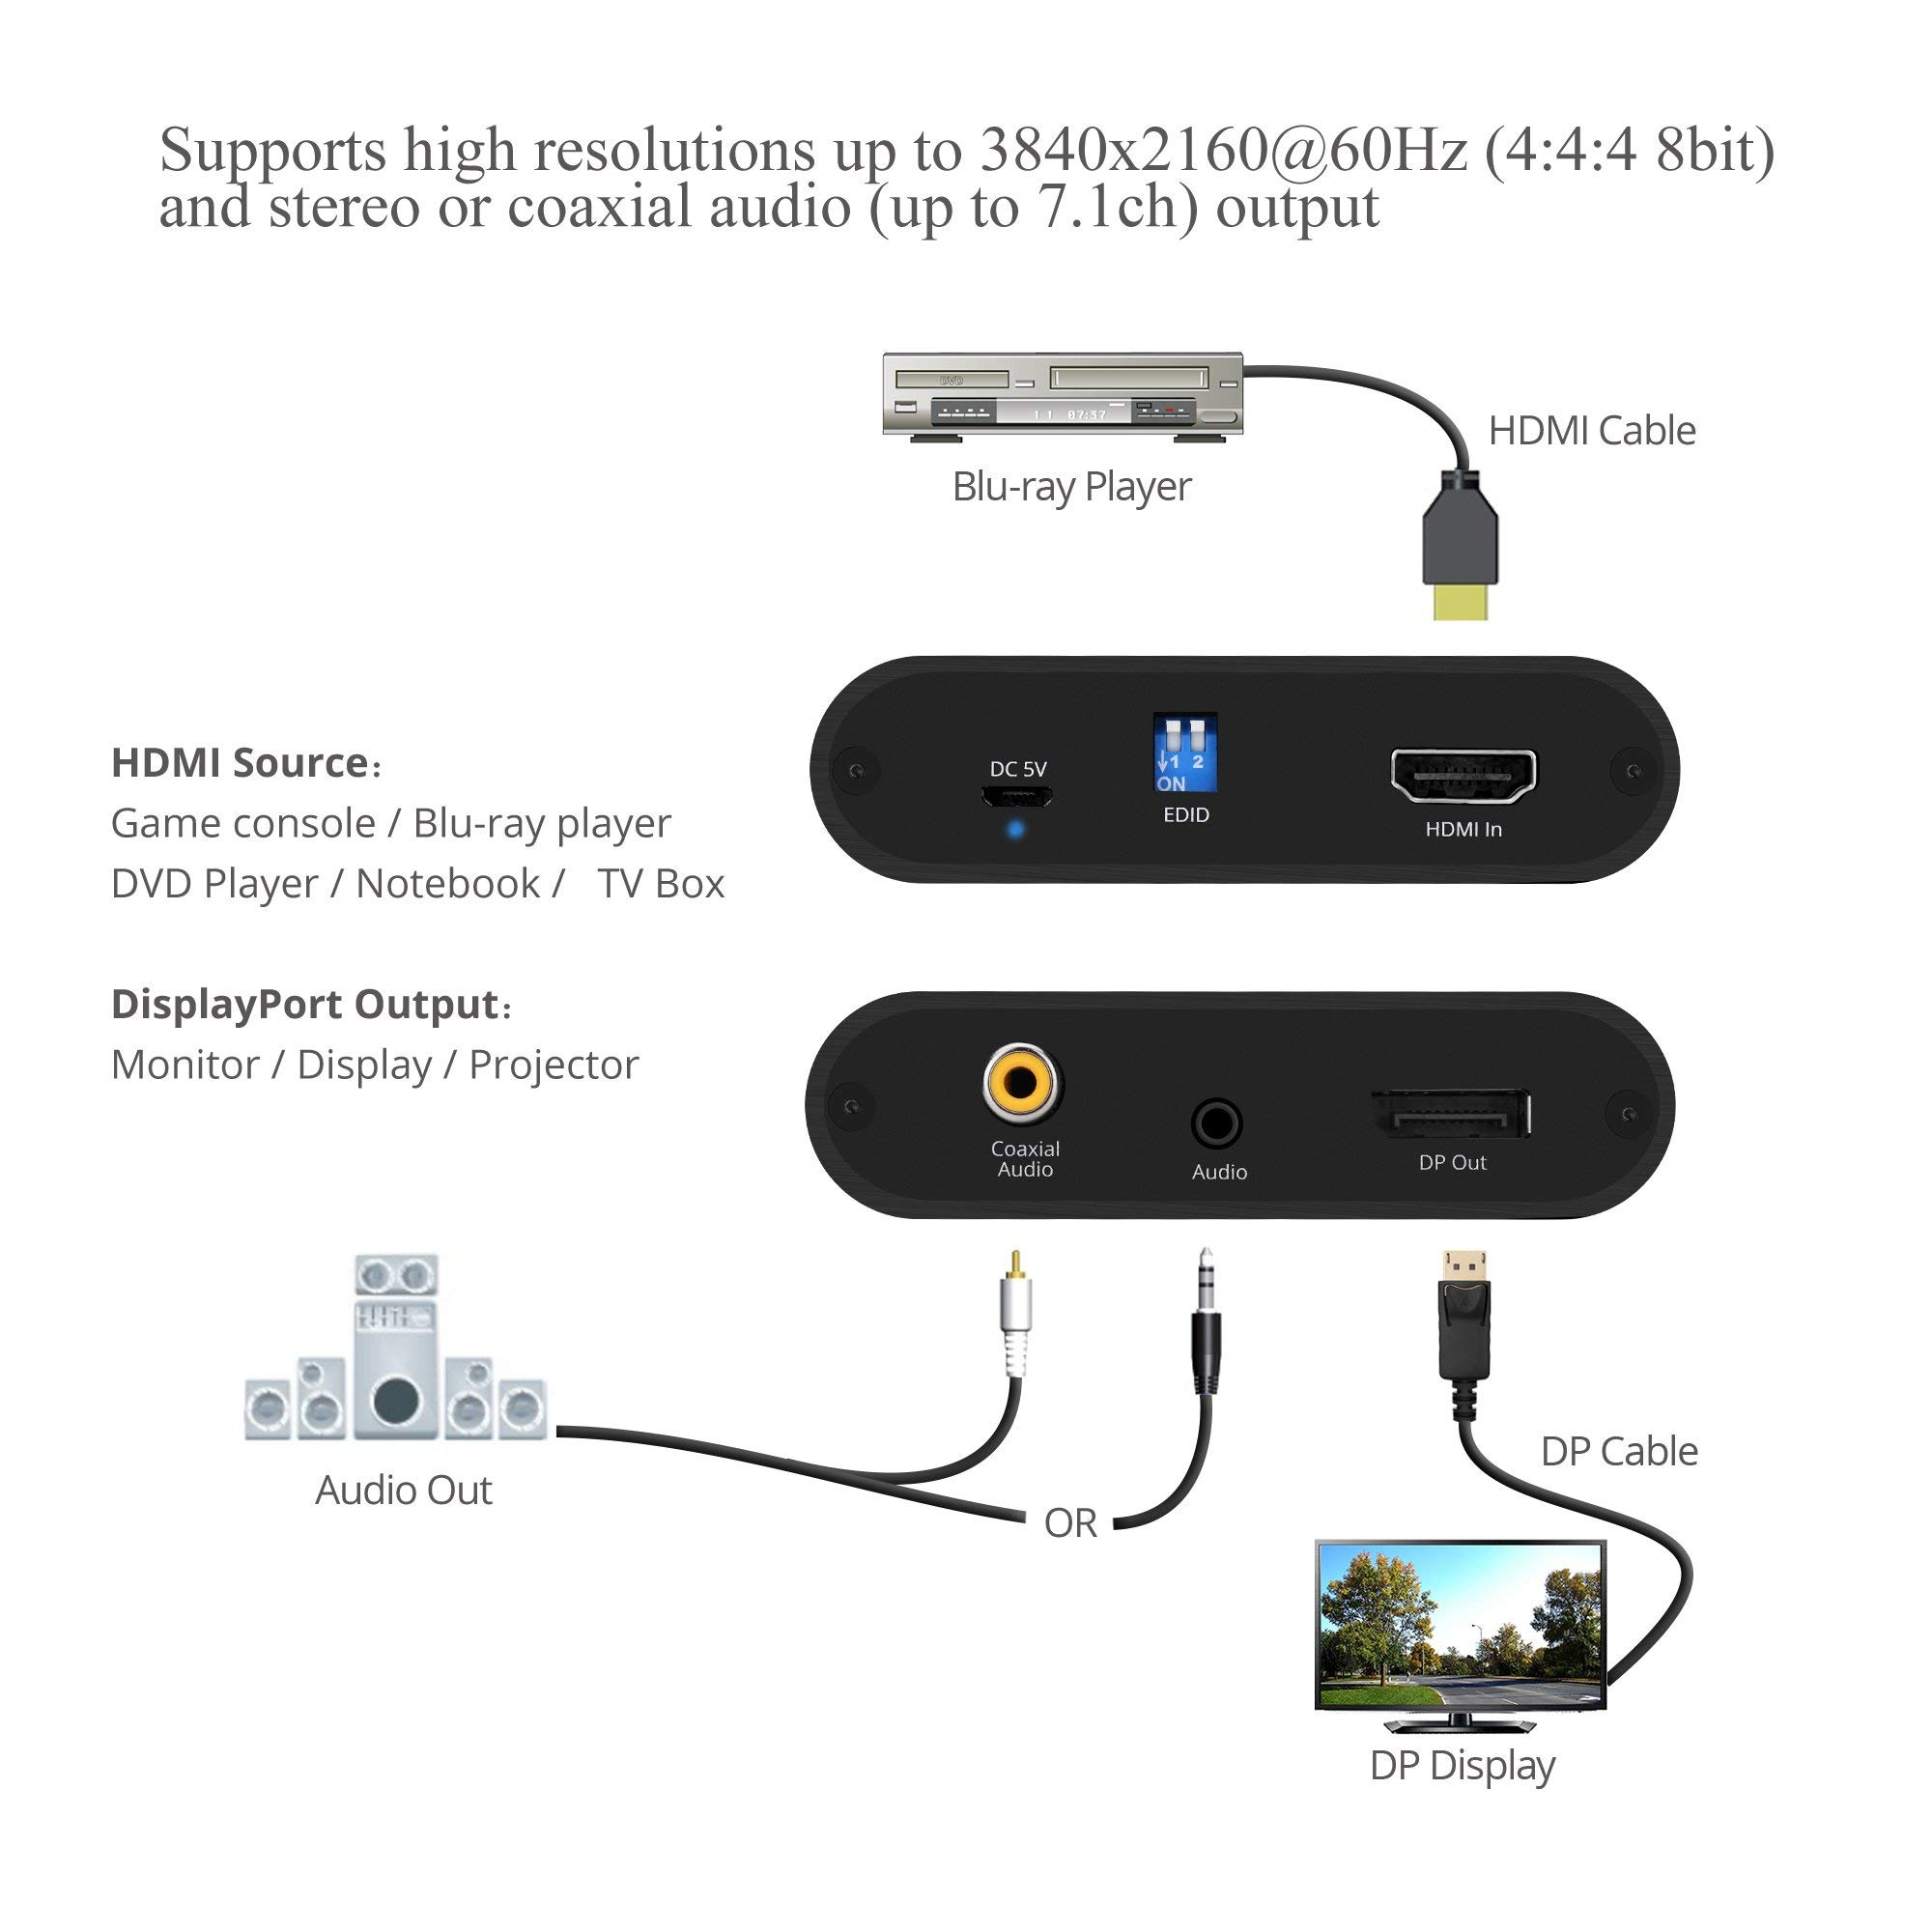 SIIG HDMI 2.0 to DisplayPort 1.2 Converter 4K@60Hz 4:4:4 HDMI to DP, 18Gbps | HDCP 2.2 | EDID, Audio Extraction to Stereo & RCA, Firmware Upgradeable | Only 1080p for Nvidia G-Sync Monitors by SIIG (Image #4)